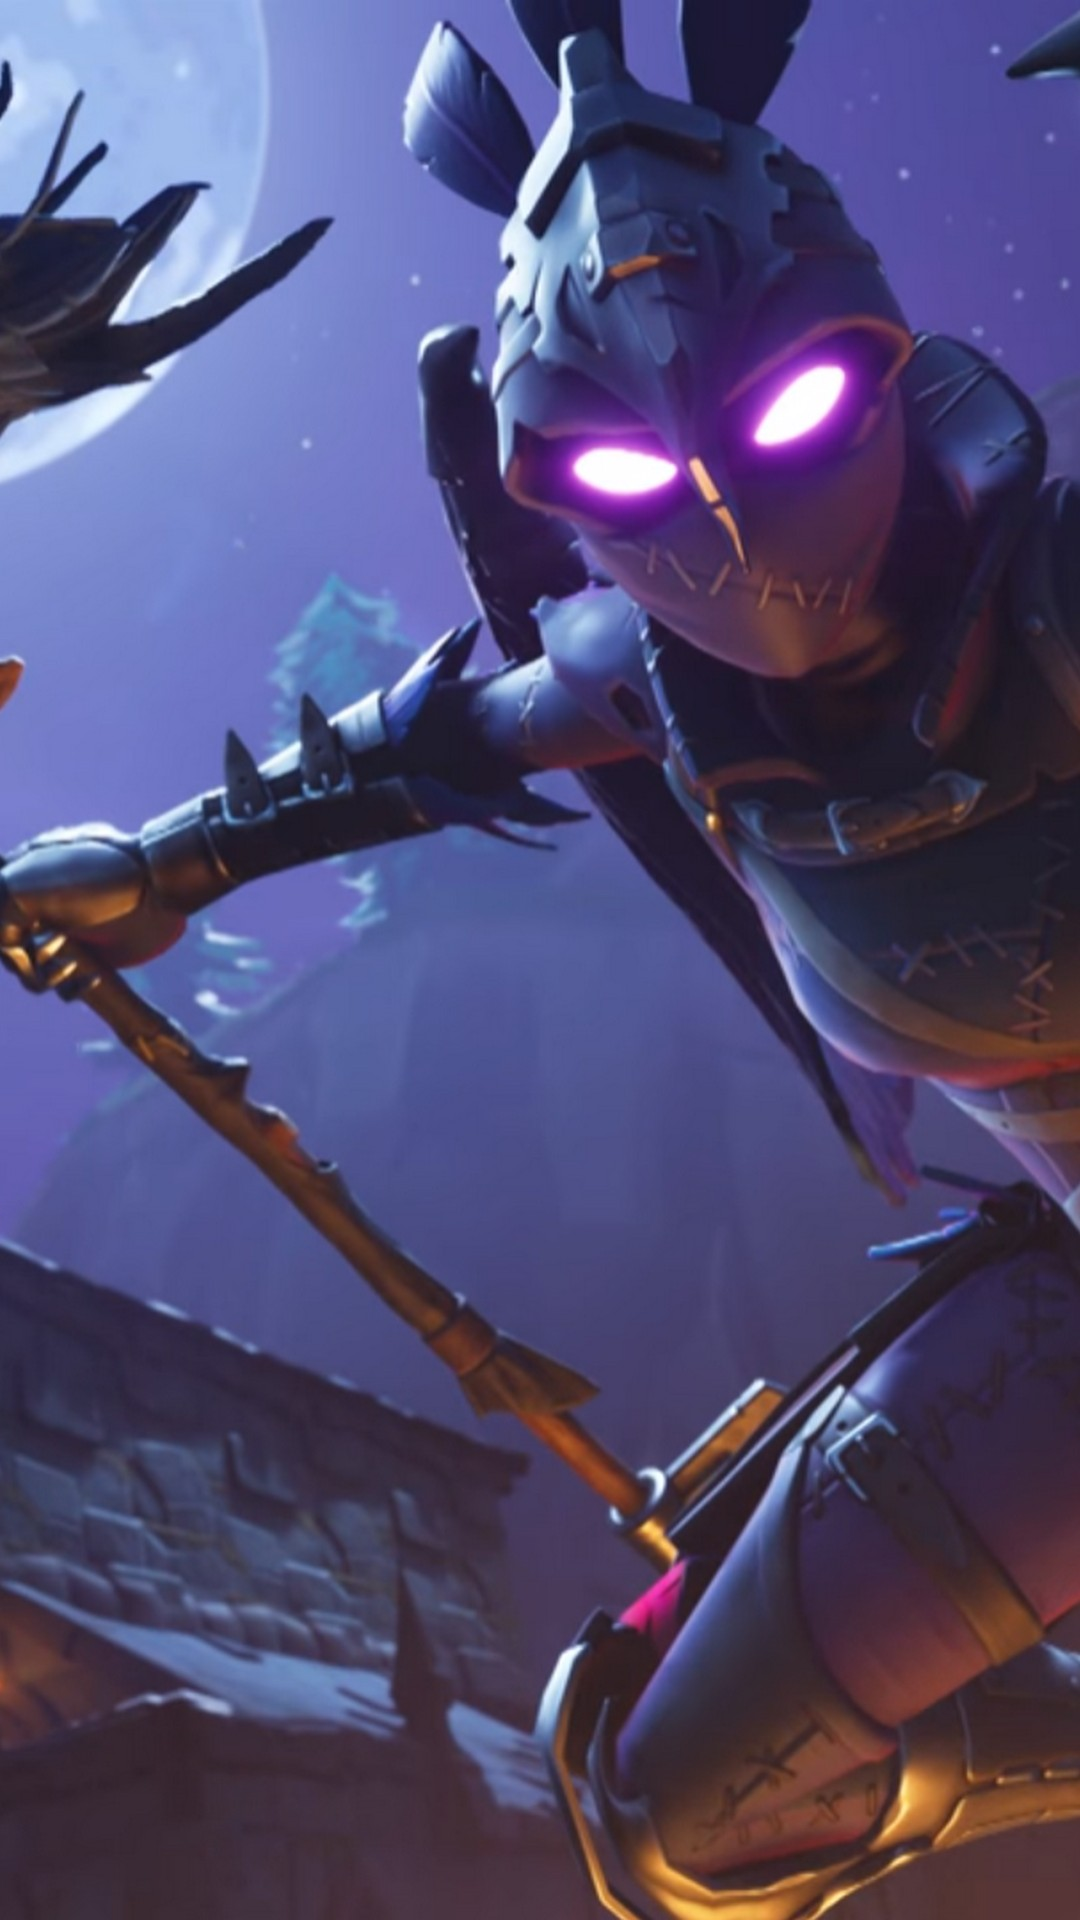 Fortnite Wallpaper For Android   2019 Android Wallpapers 1080x1920